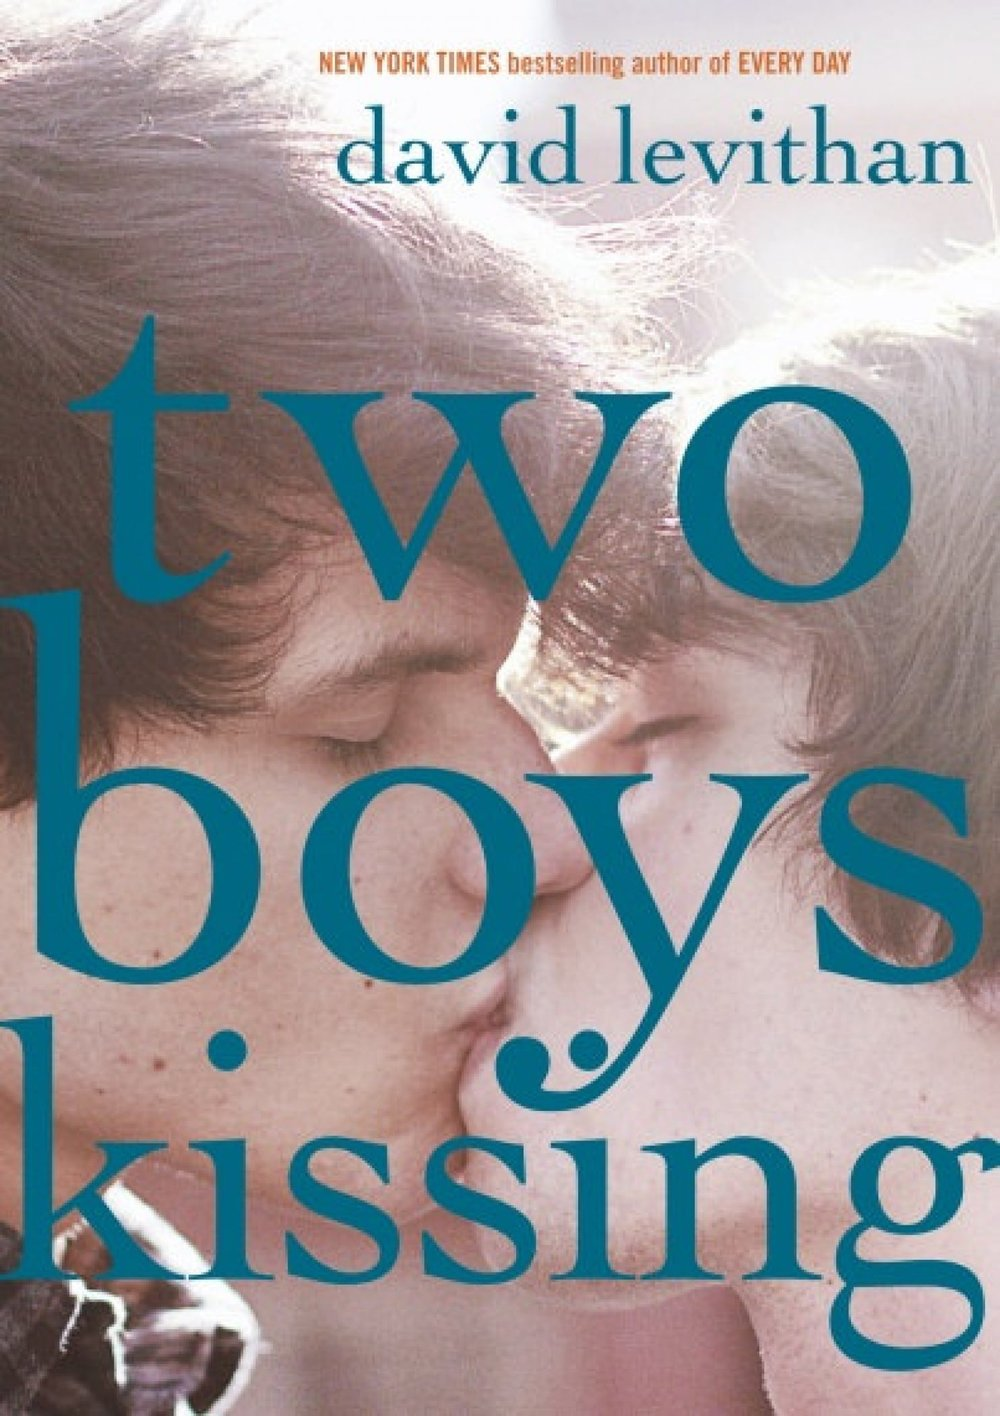 david-levithan-two-boys-kissing.jpg